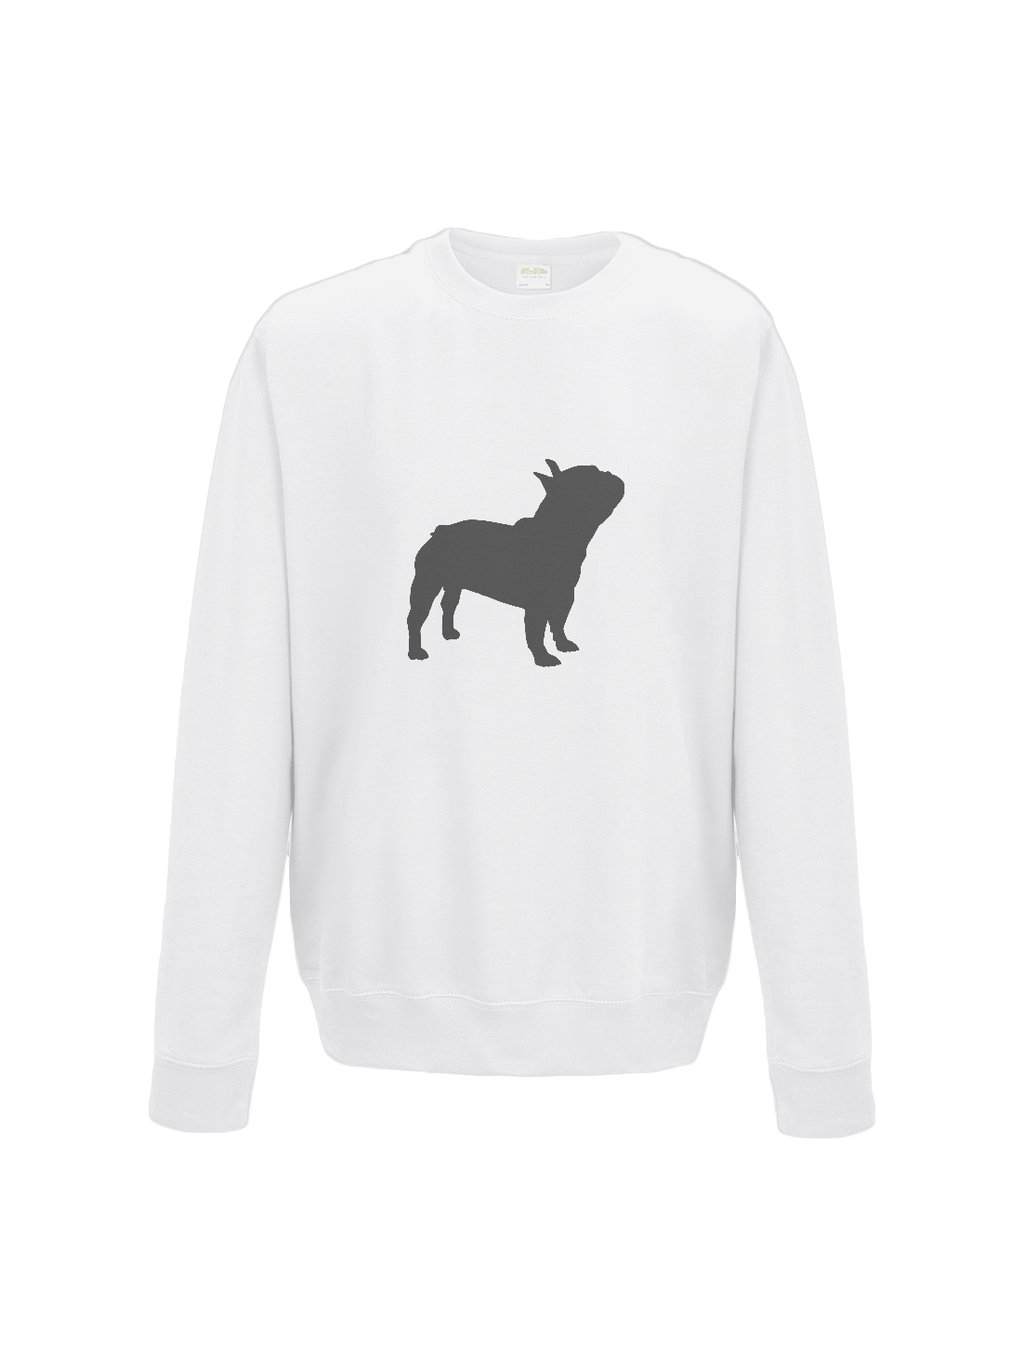 FRENCHIE sweatshirt in white